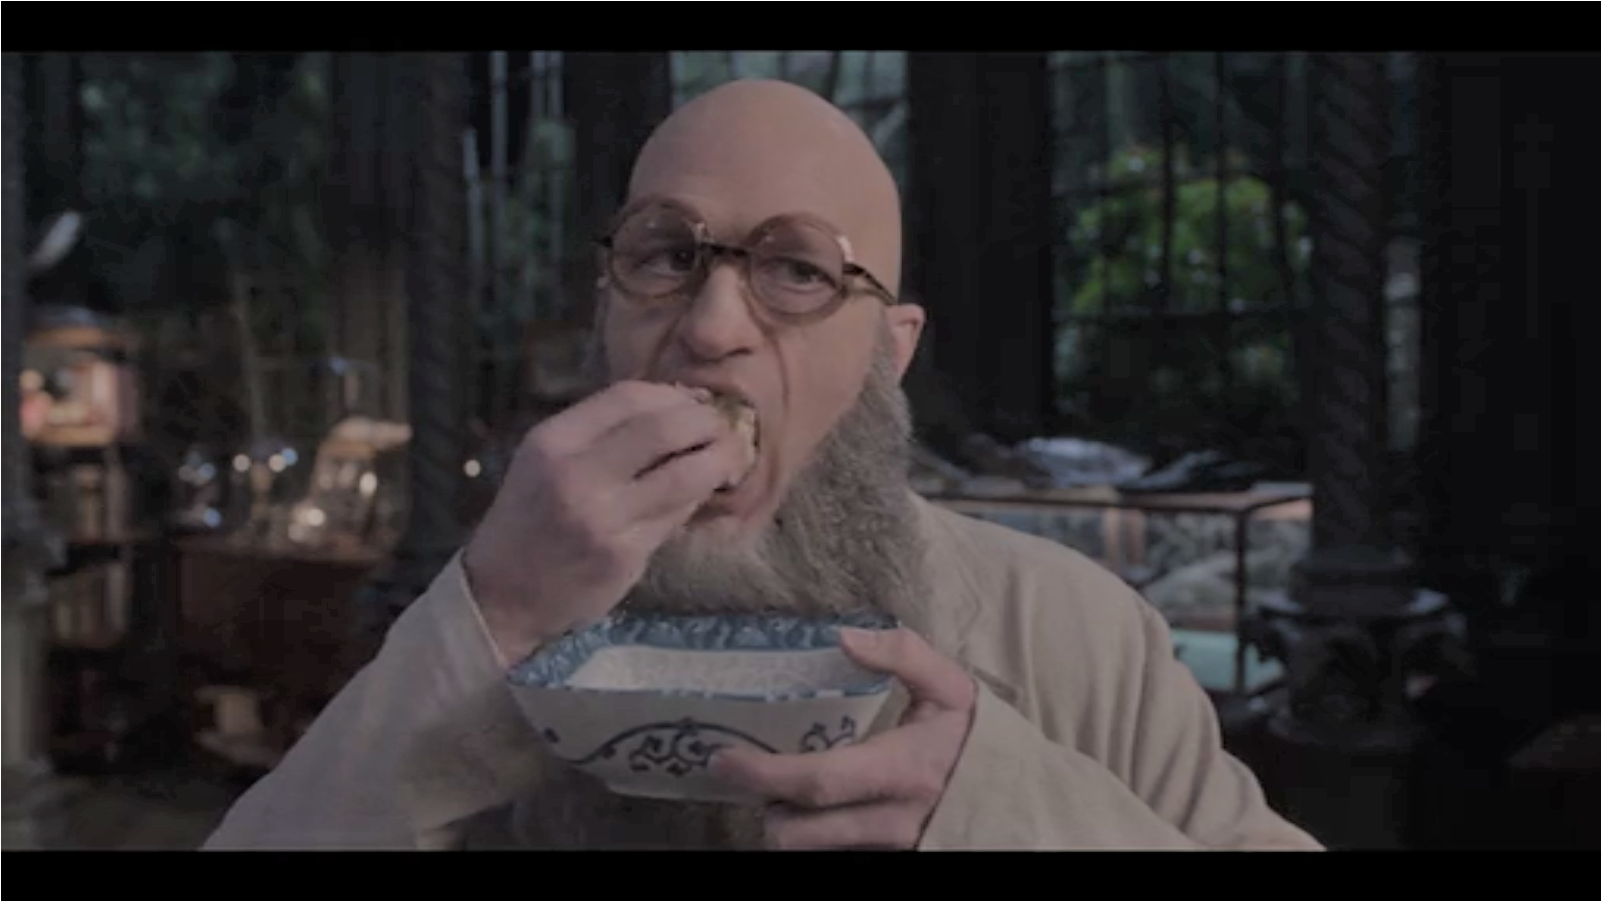 This image, obtained by one of my associates from the Netflix corporation, shows Count Olaf disguised as Stephano, villainously shoving all of the potstickers into his own vile mouth.